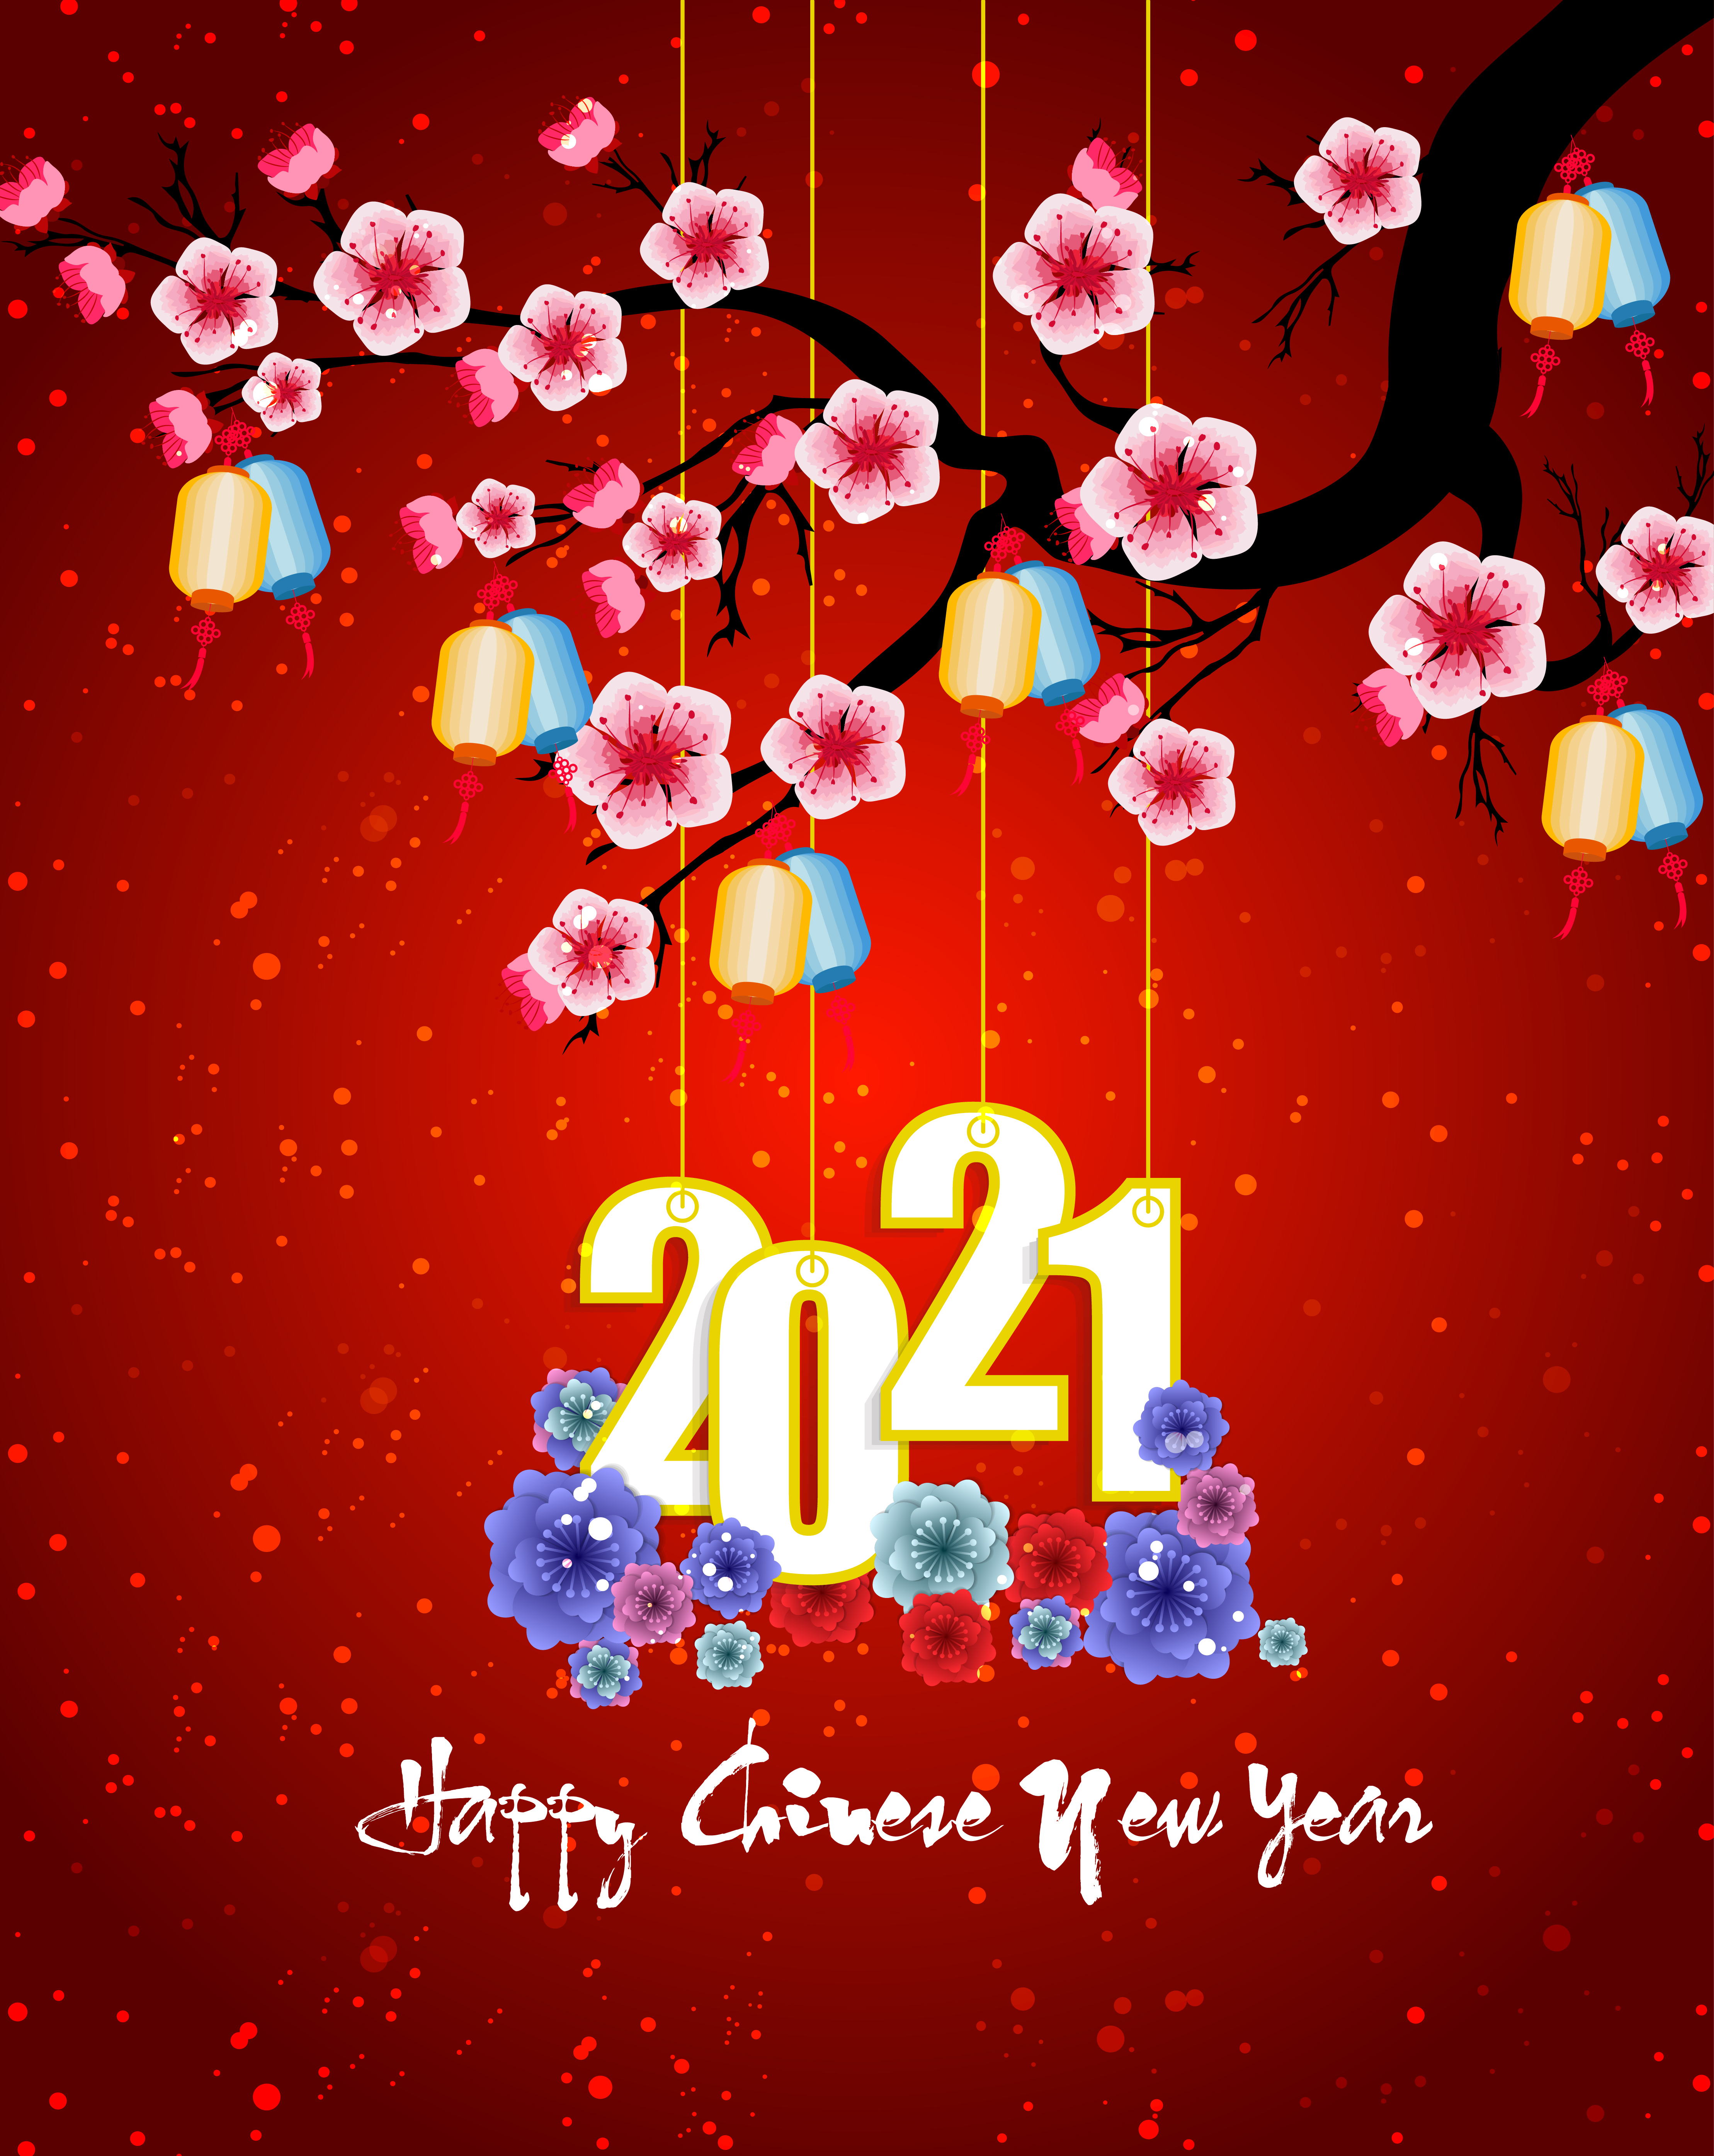 Chinese New Year Hanging 2021 Poster on Red with Blossoms ...